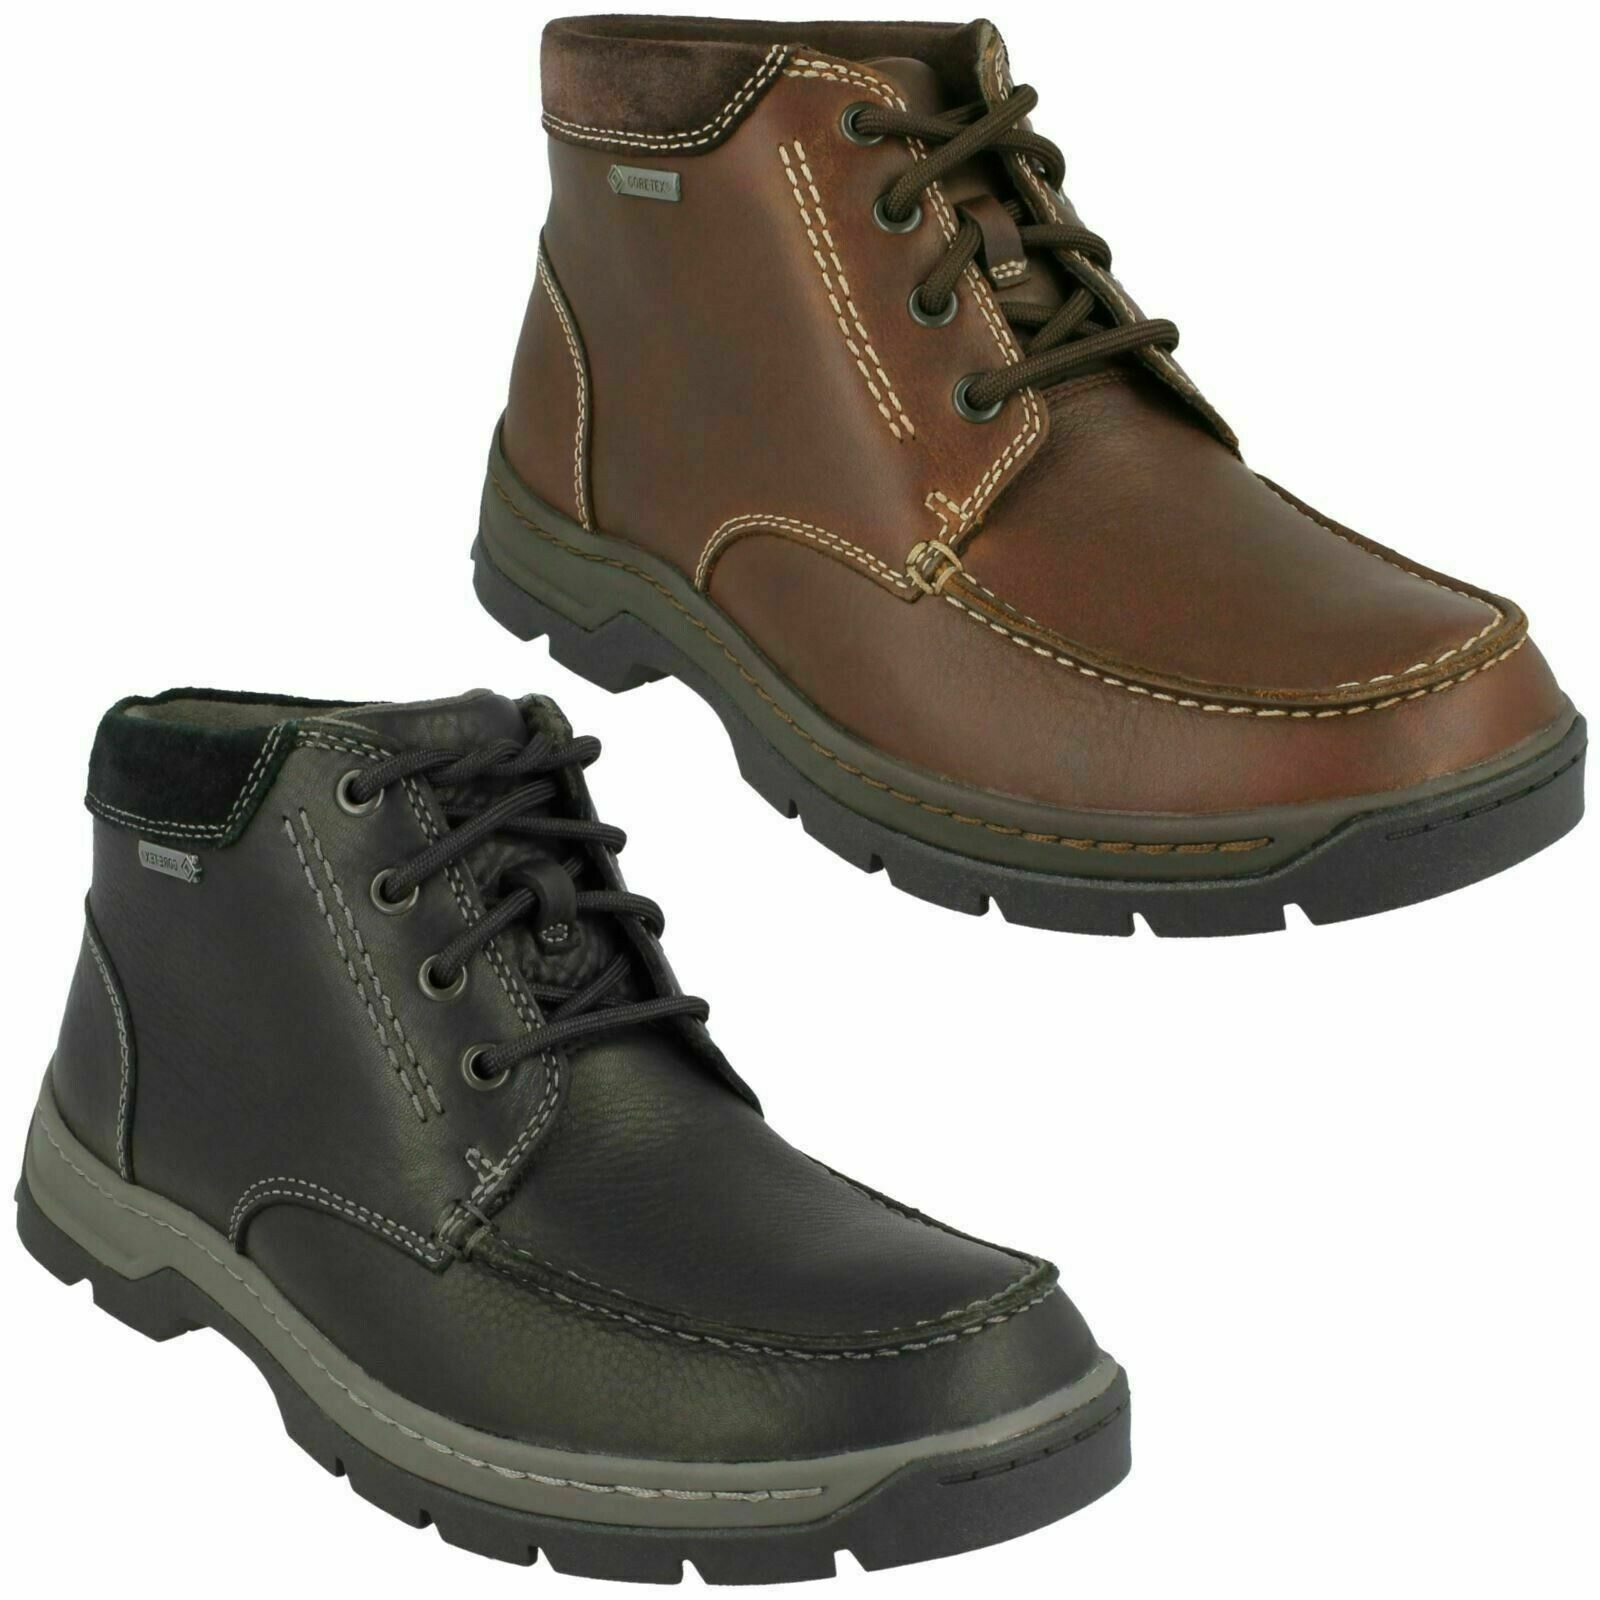 MENS CLARKS STANTEN TIME GORE TEX LACE UP CASUAL WALKING WINTER ANKLE BOOTS SIZE